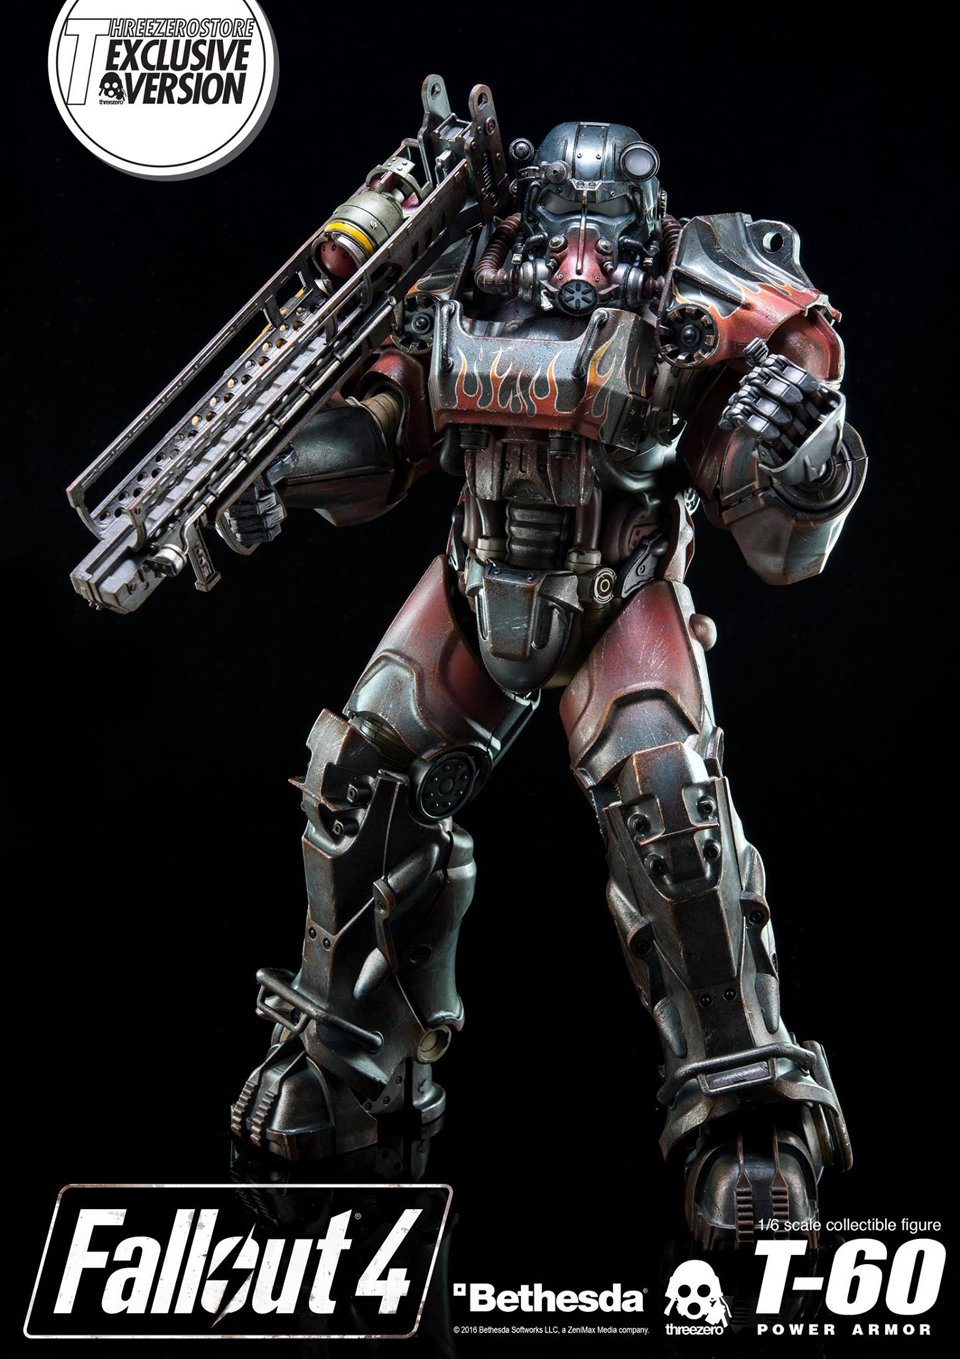 Threezero Fallout T-60 Power Armor 1/6 Scale Action Figure